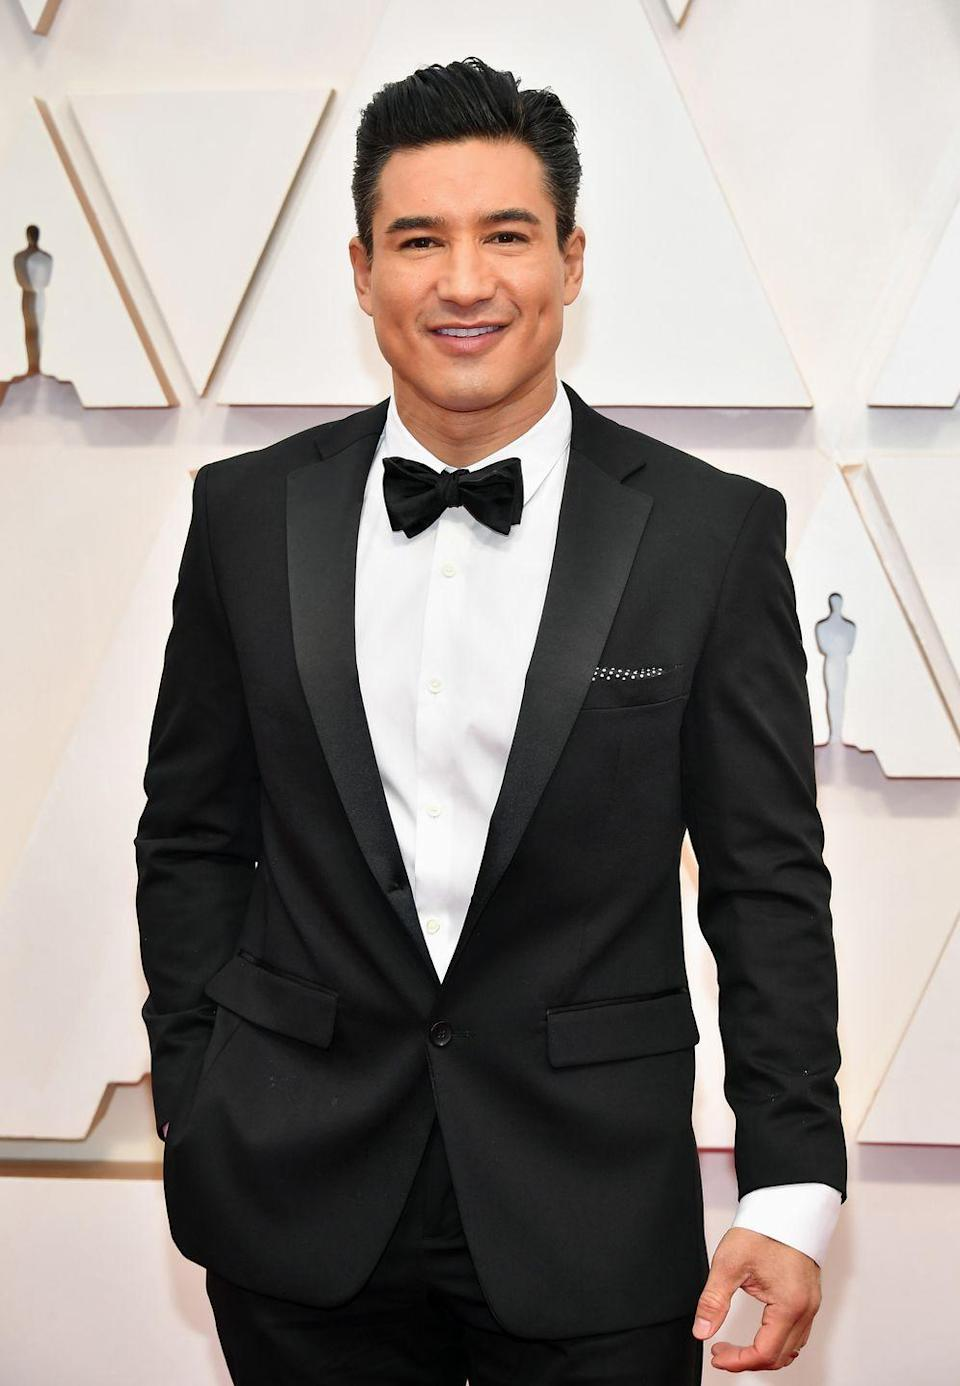 <p>Now hosting <em>Extra</em> (and with his hair intact!), Lopez continues to take on acting roles, while also making everyone wonder what magic potion he's drinking to stay looking so young in his late forties. </p>